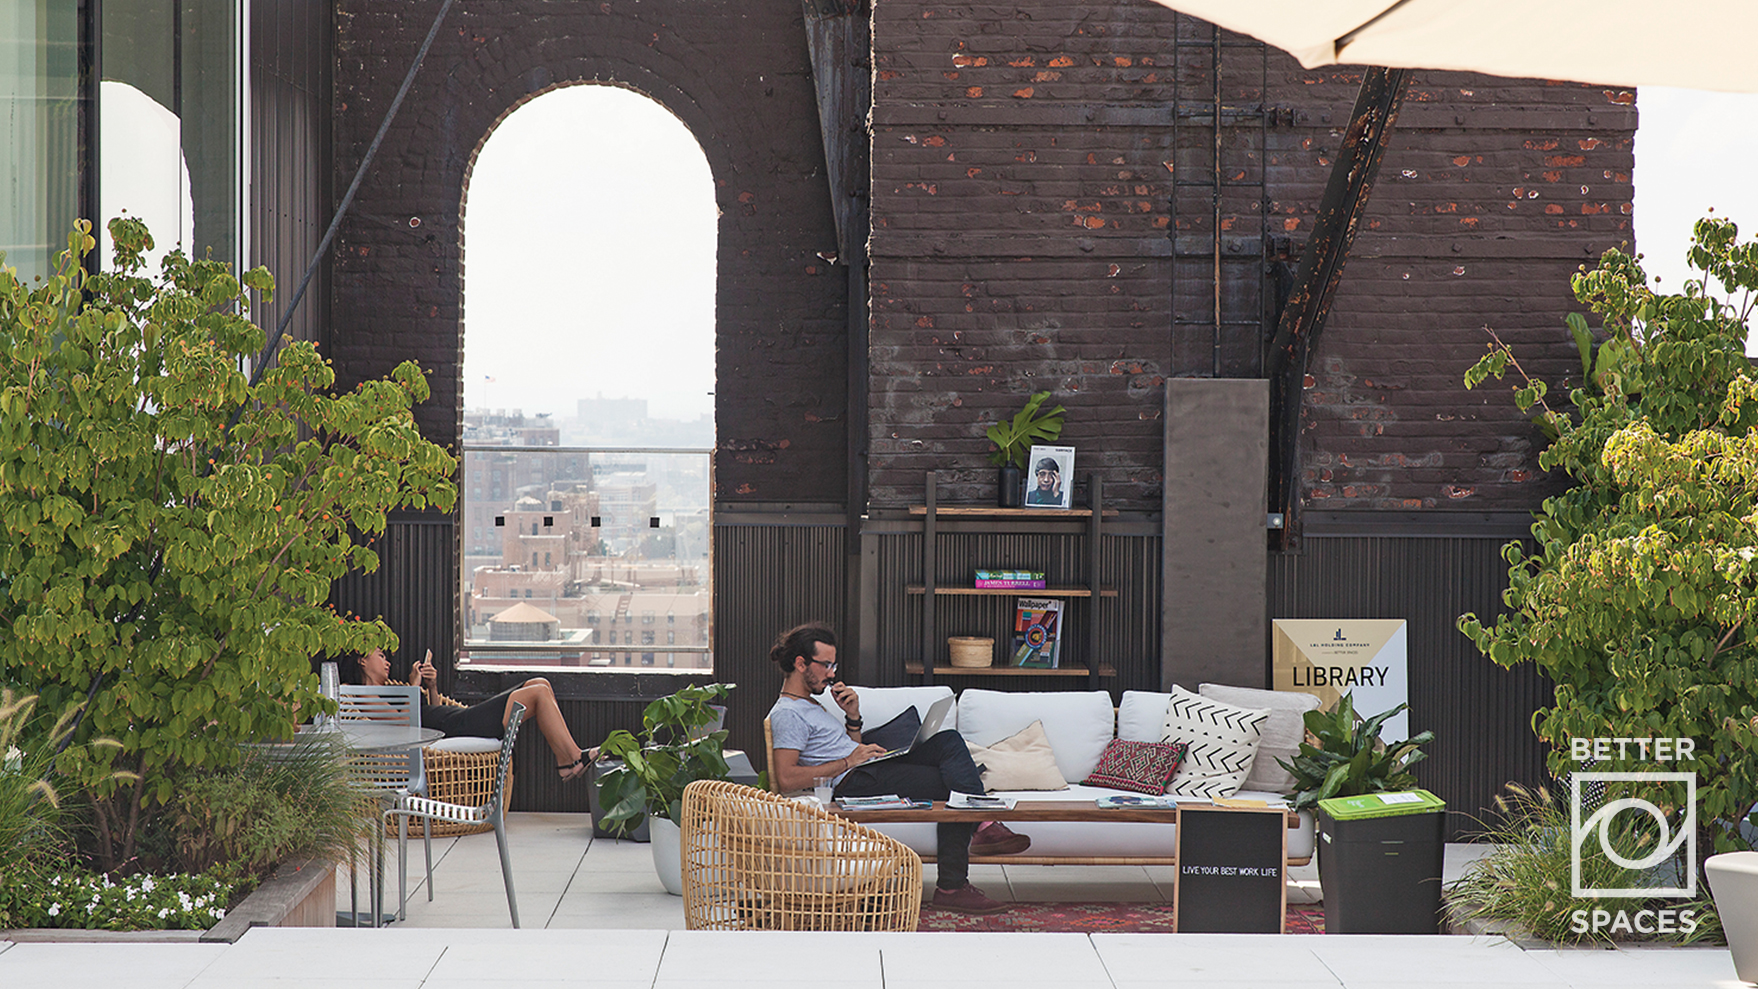 A Tenant Takes a Break in a Rooftop Library Activation   Photo Credit:  Jessica Nash   , August 2017   Download for Web  |  Download for Print